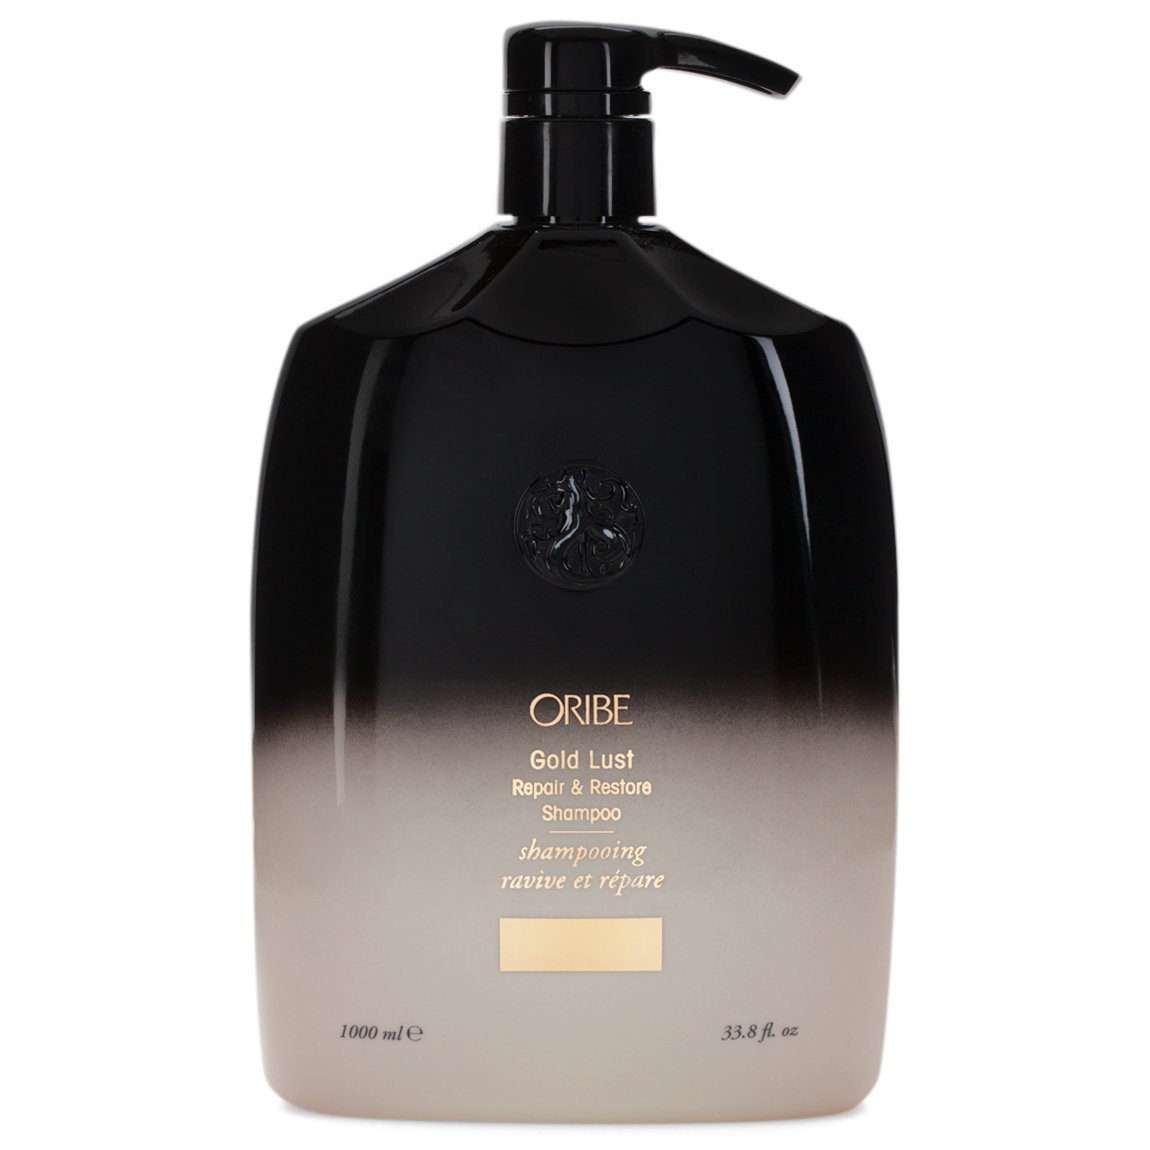 Oribe Gold Lust Repair & Restore Shampoo 1 L product swatch.